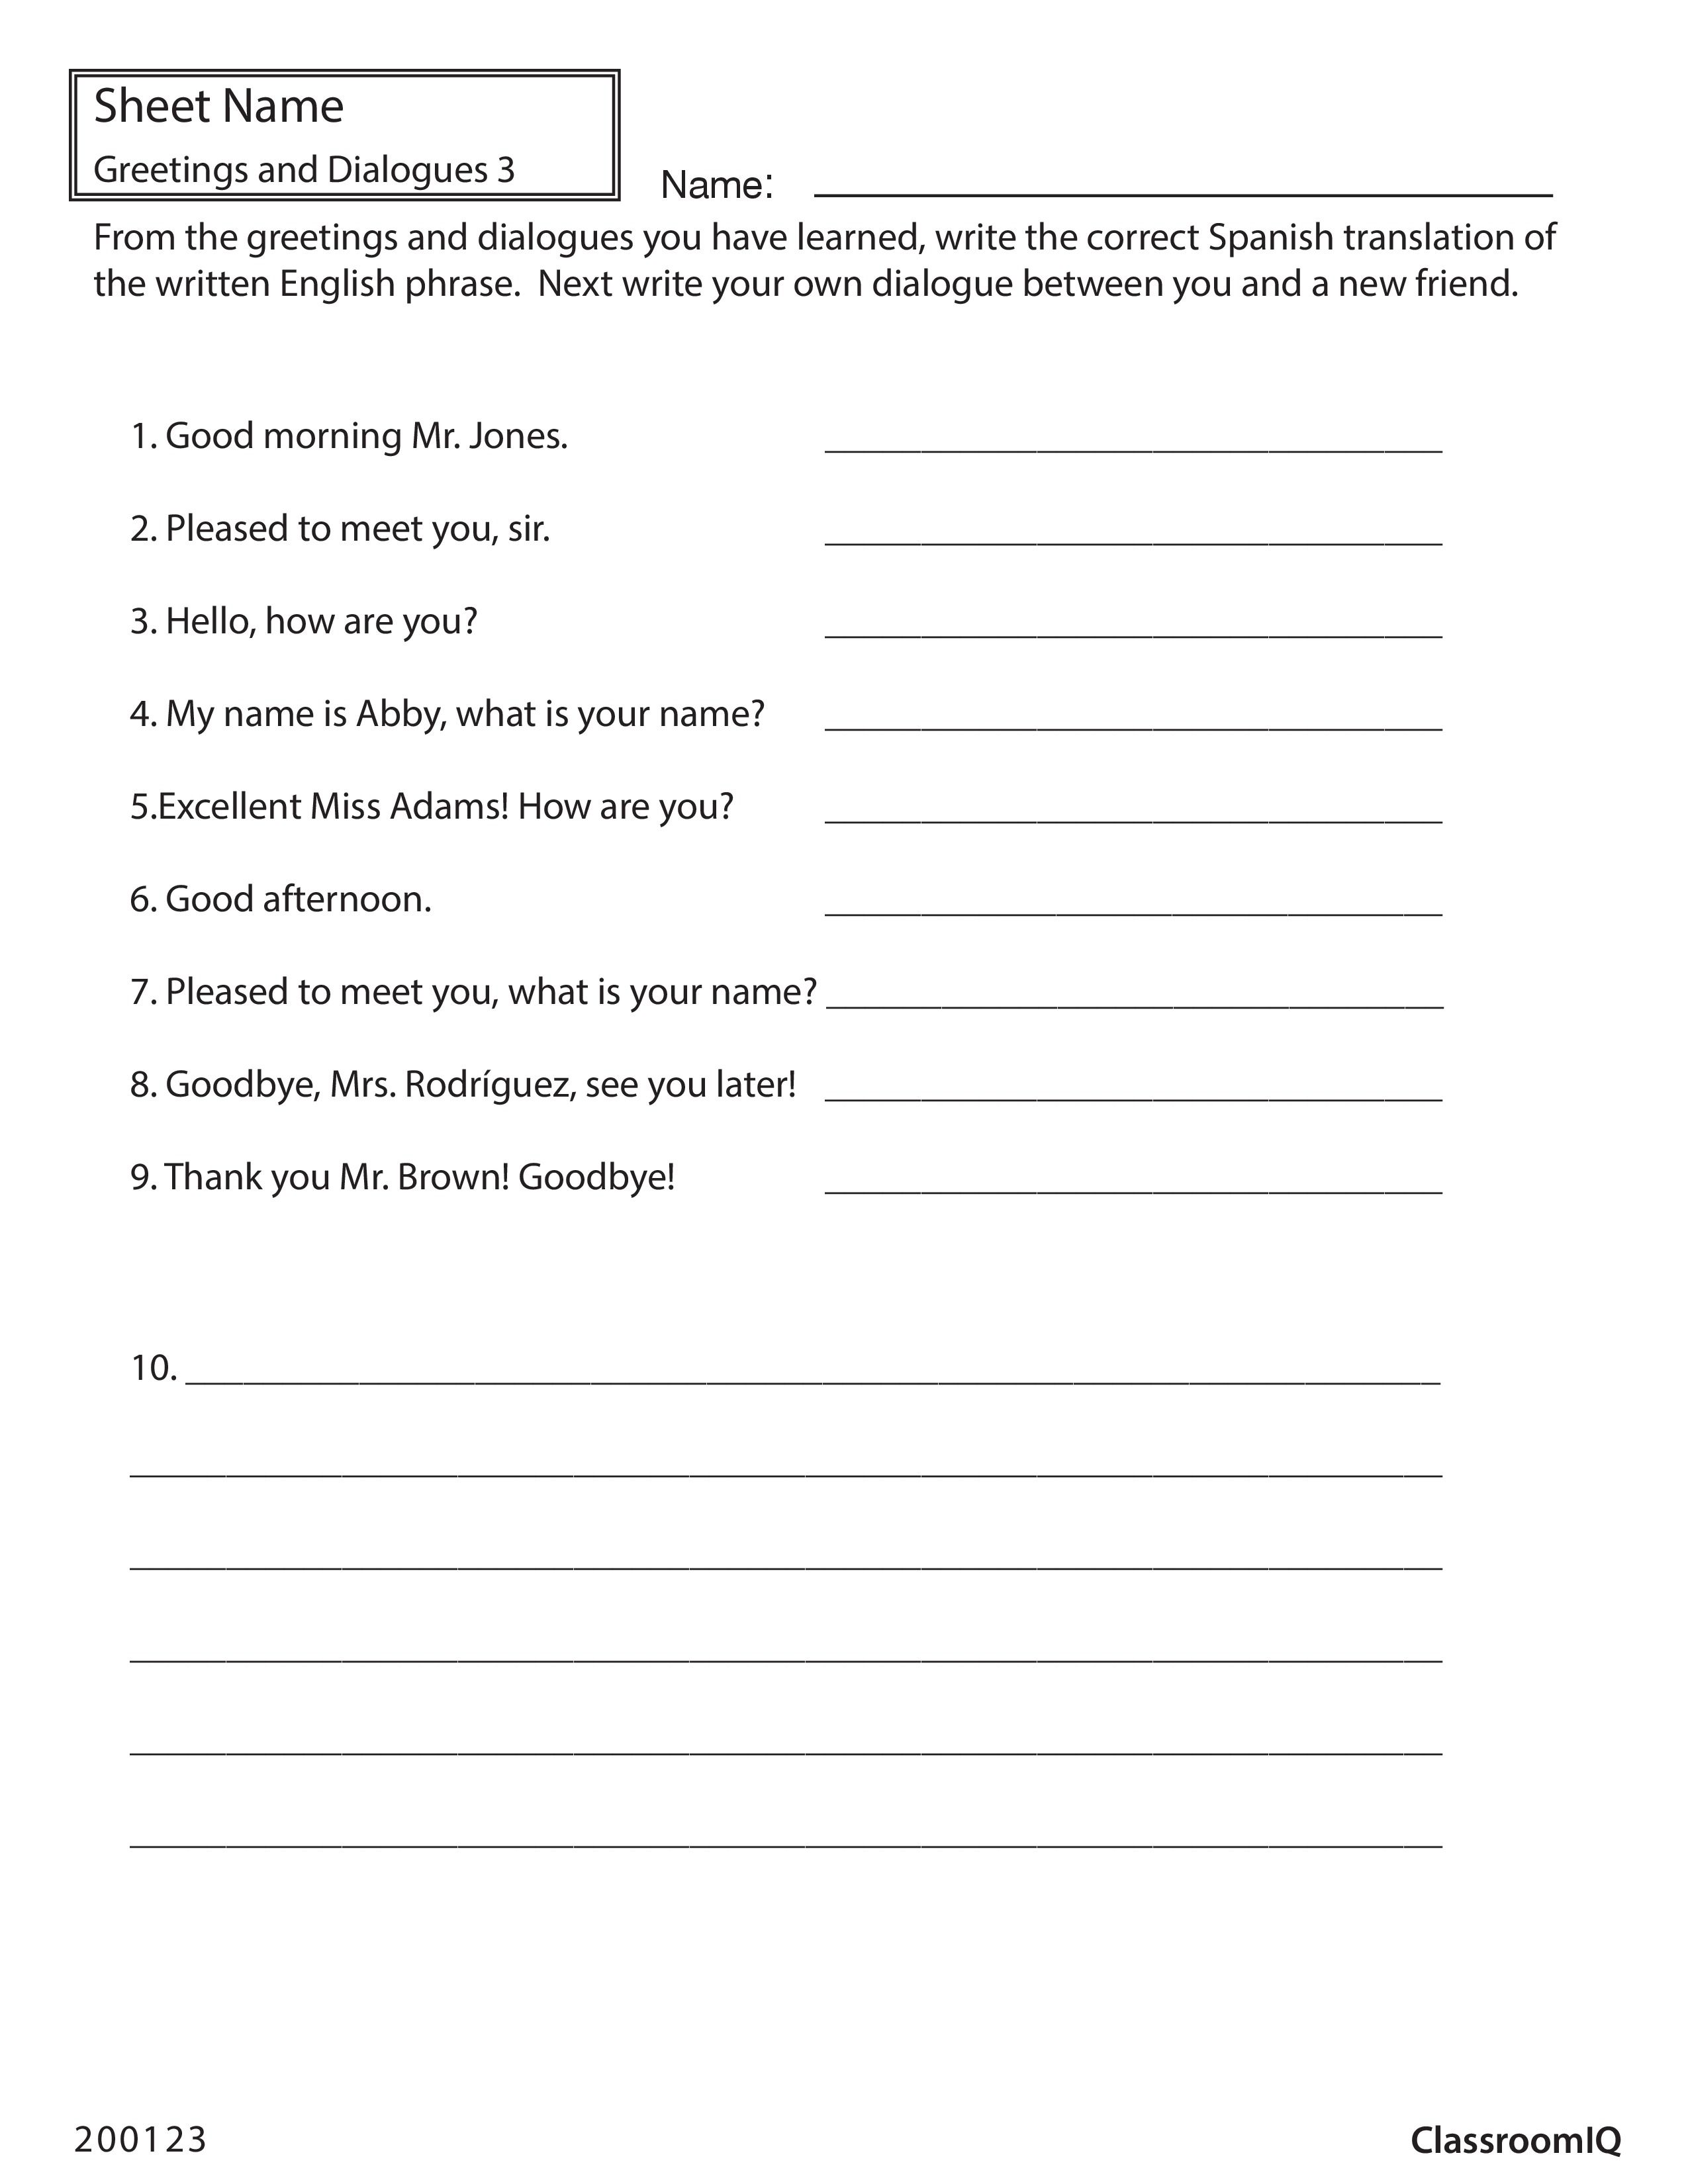 005 Translate My Essay Into Spanish Remarkable Full